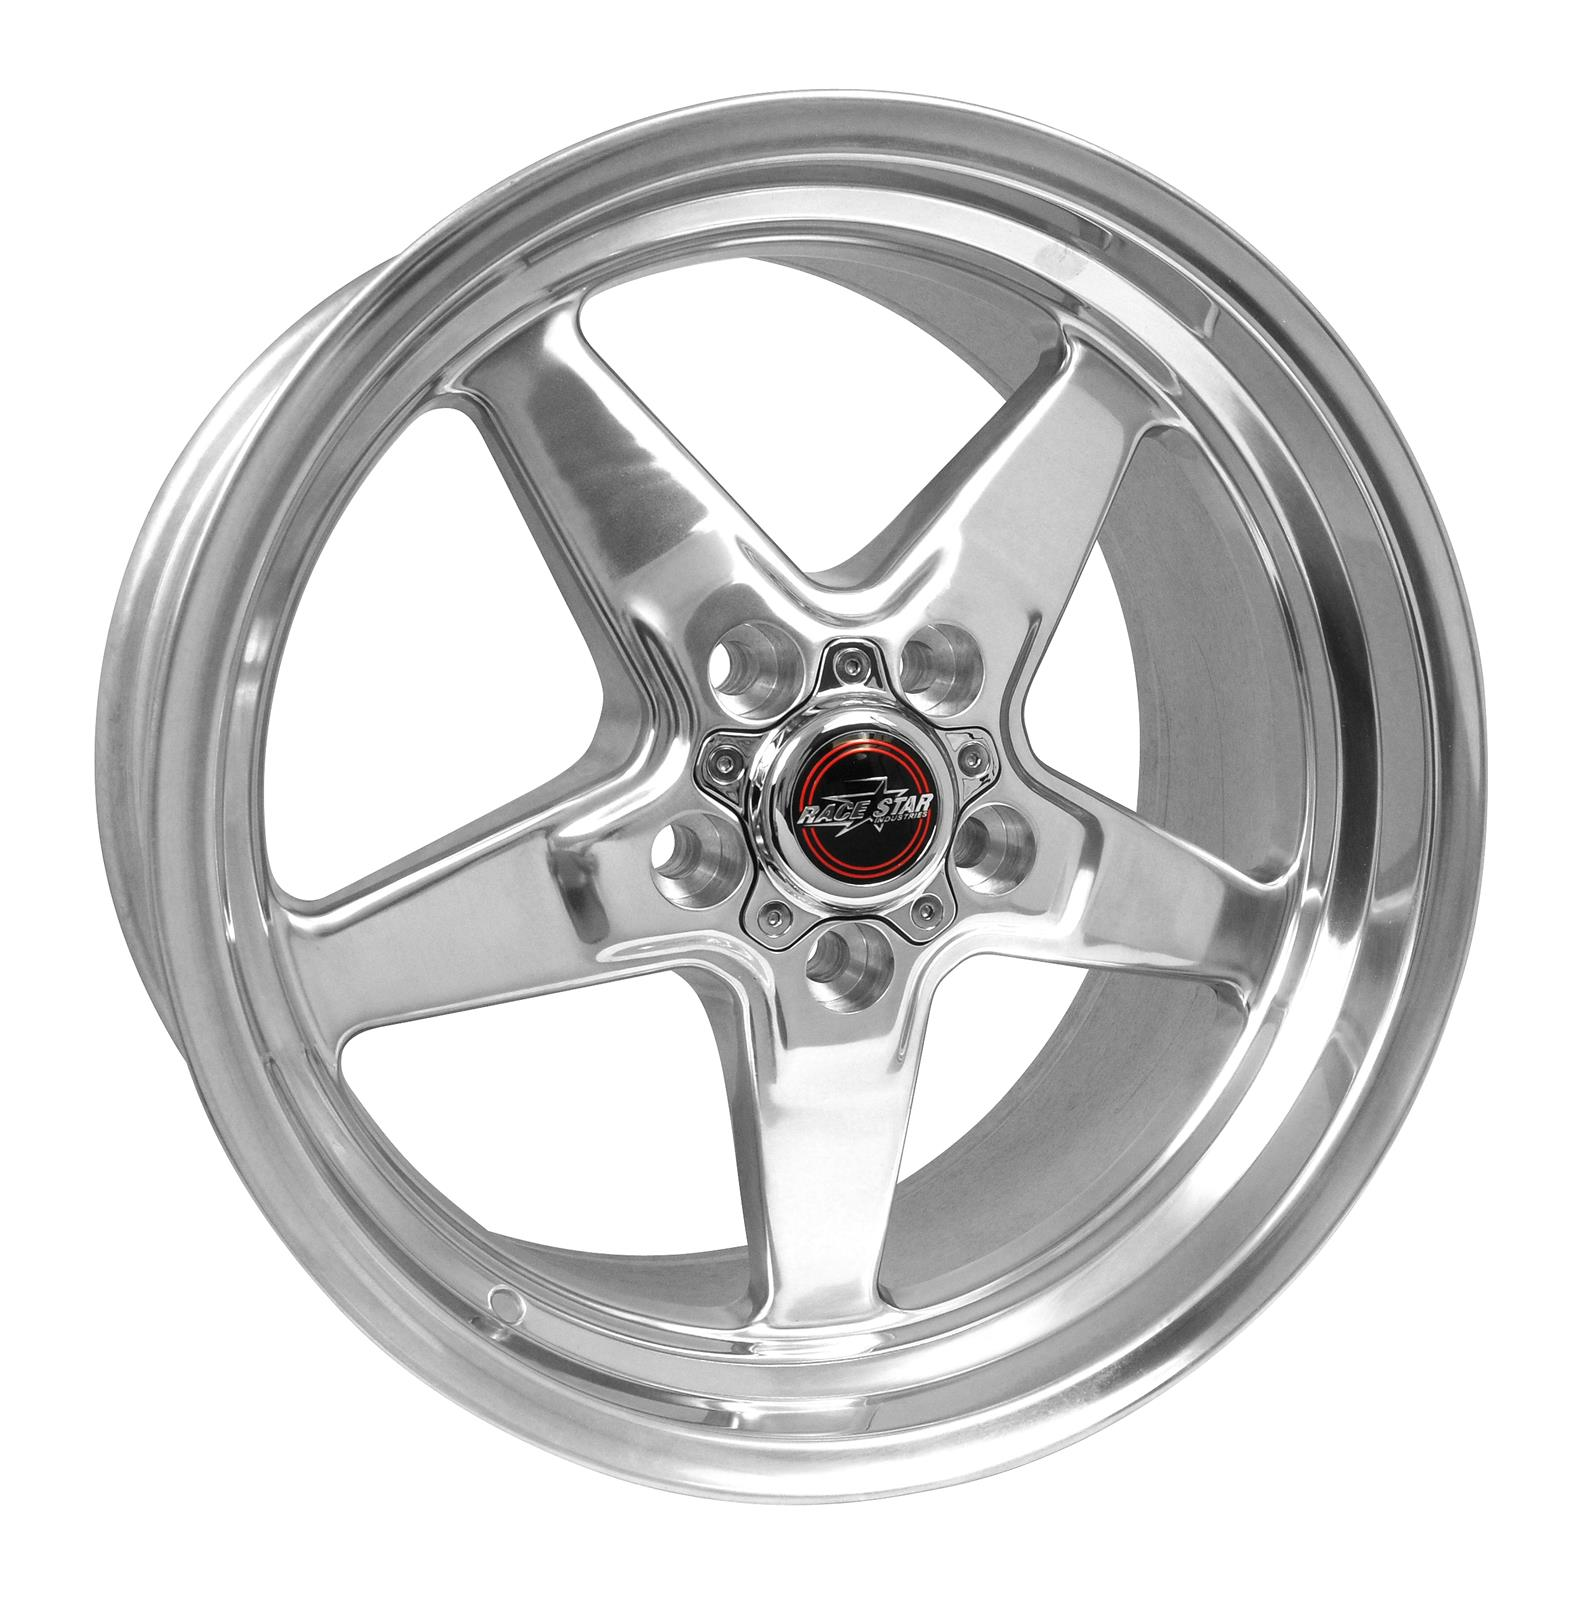 Race star 92 drag star polished wheels 92 795452dp free shipping on orders over 99 at summit racing